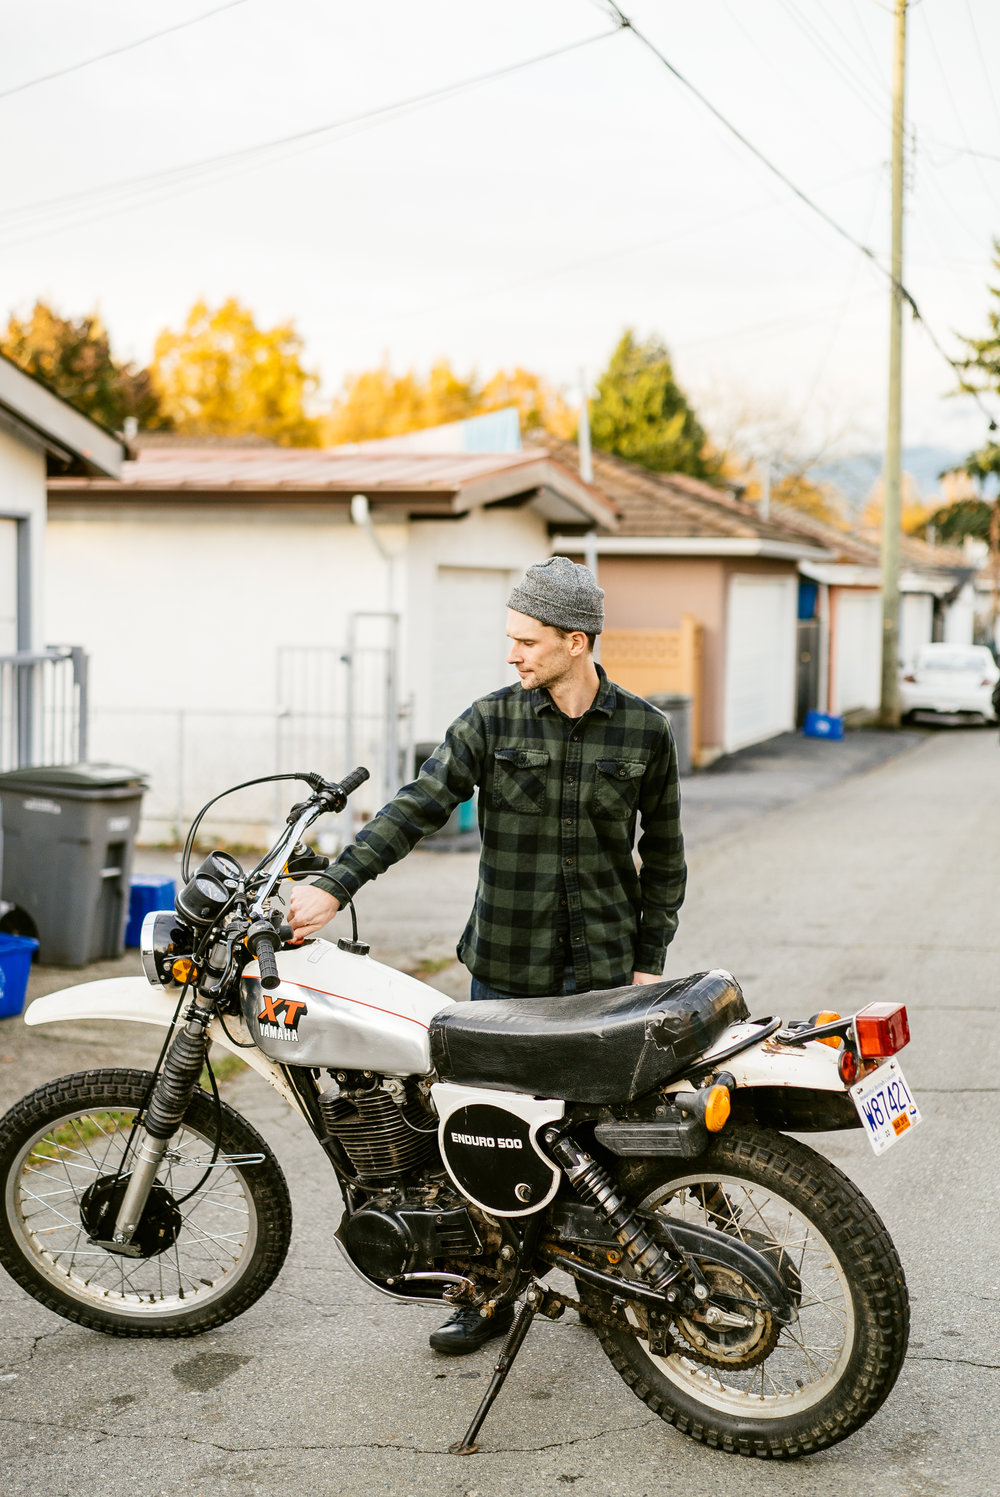 Warren Fenton's Ride | TheMotoSocialVANCOUVER